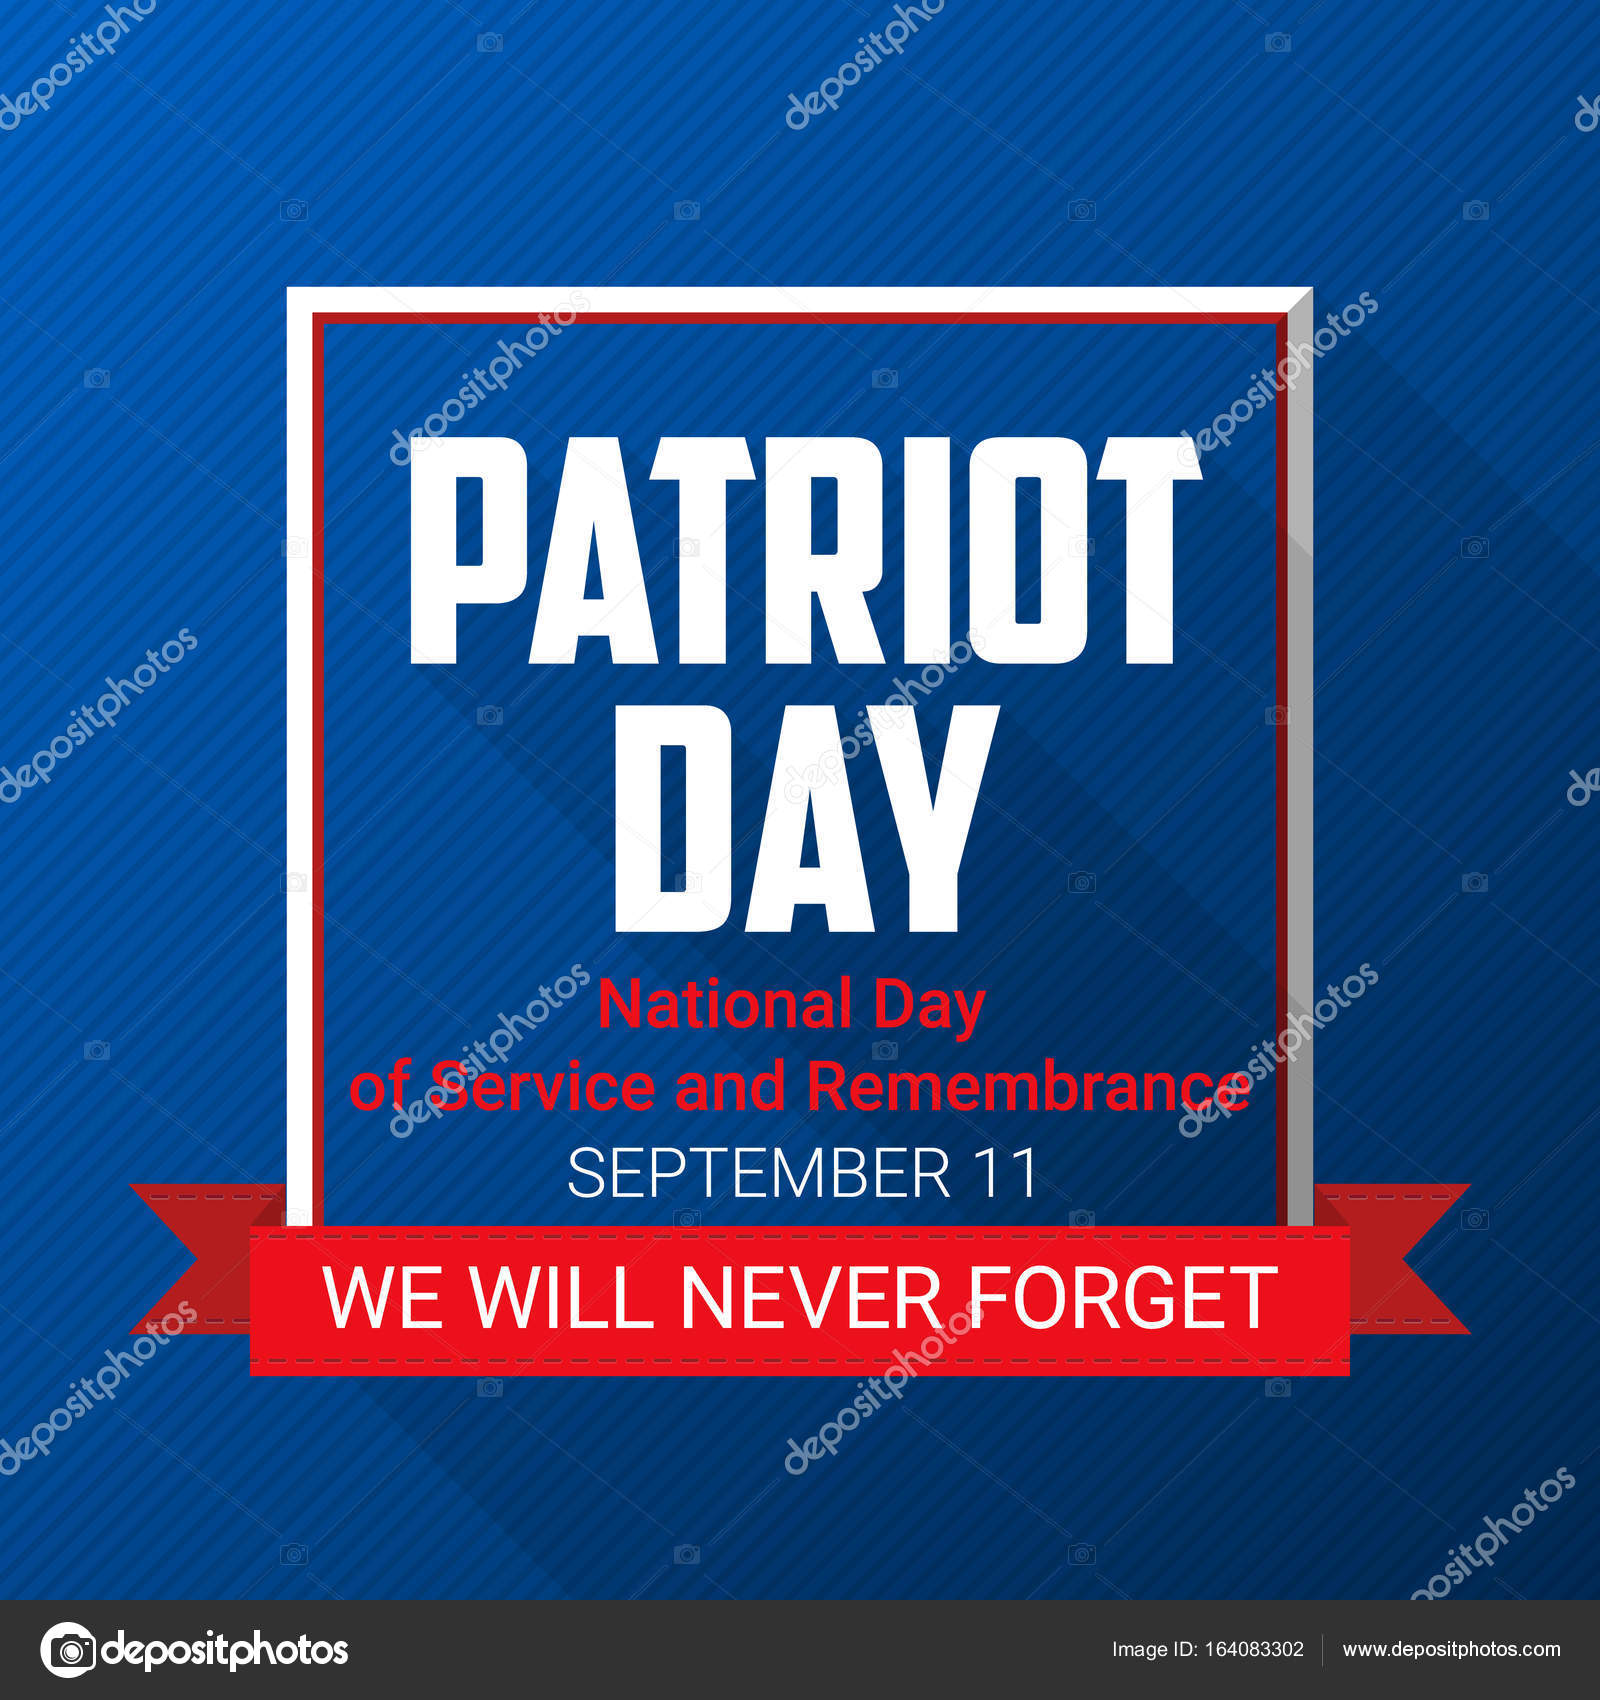 patriot day background for september 11 usa patriotic template with